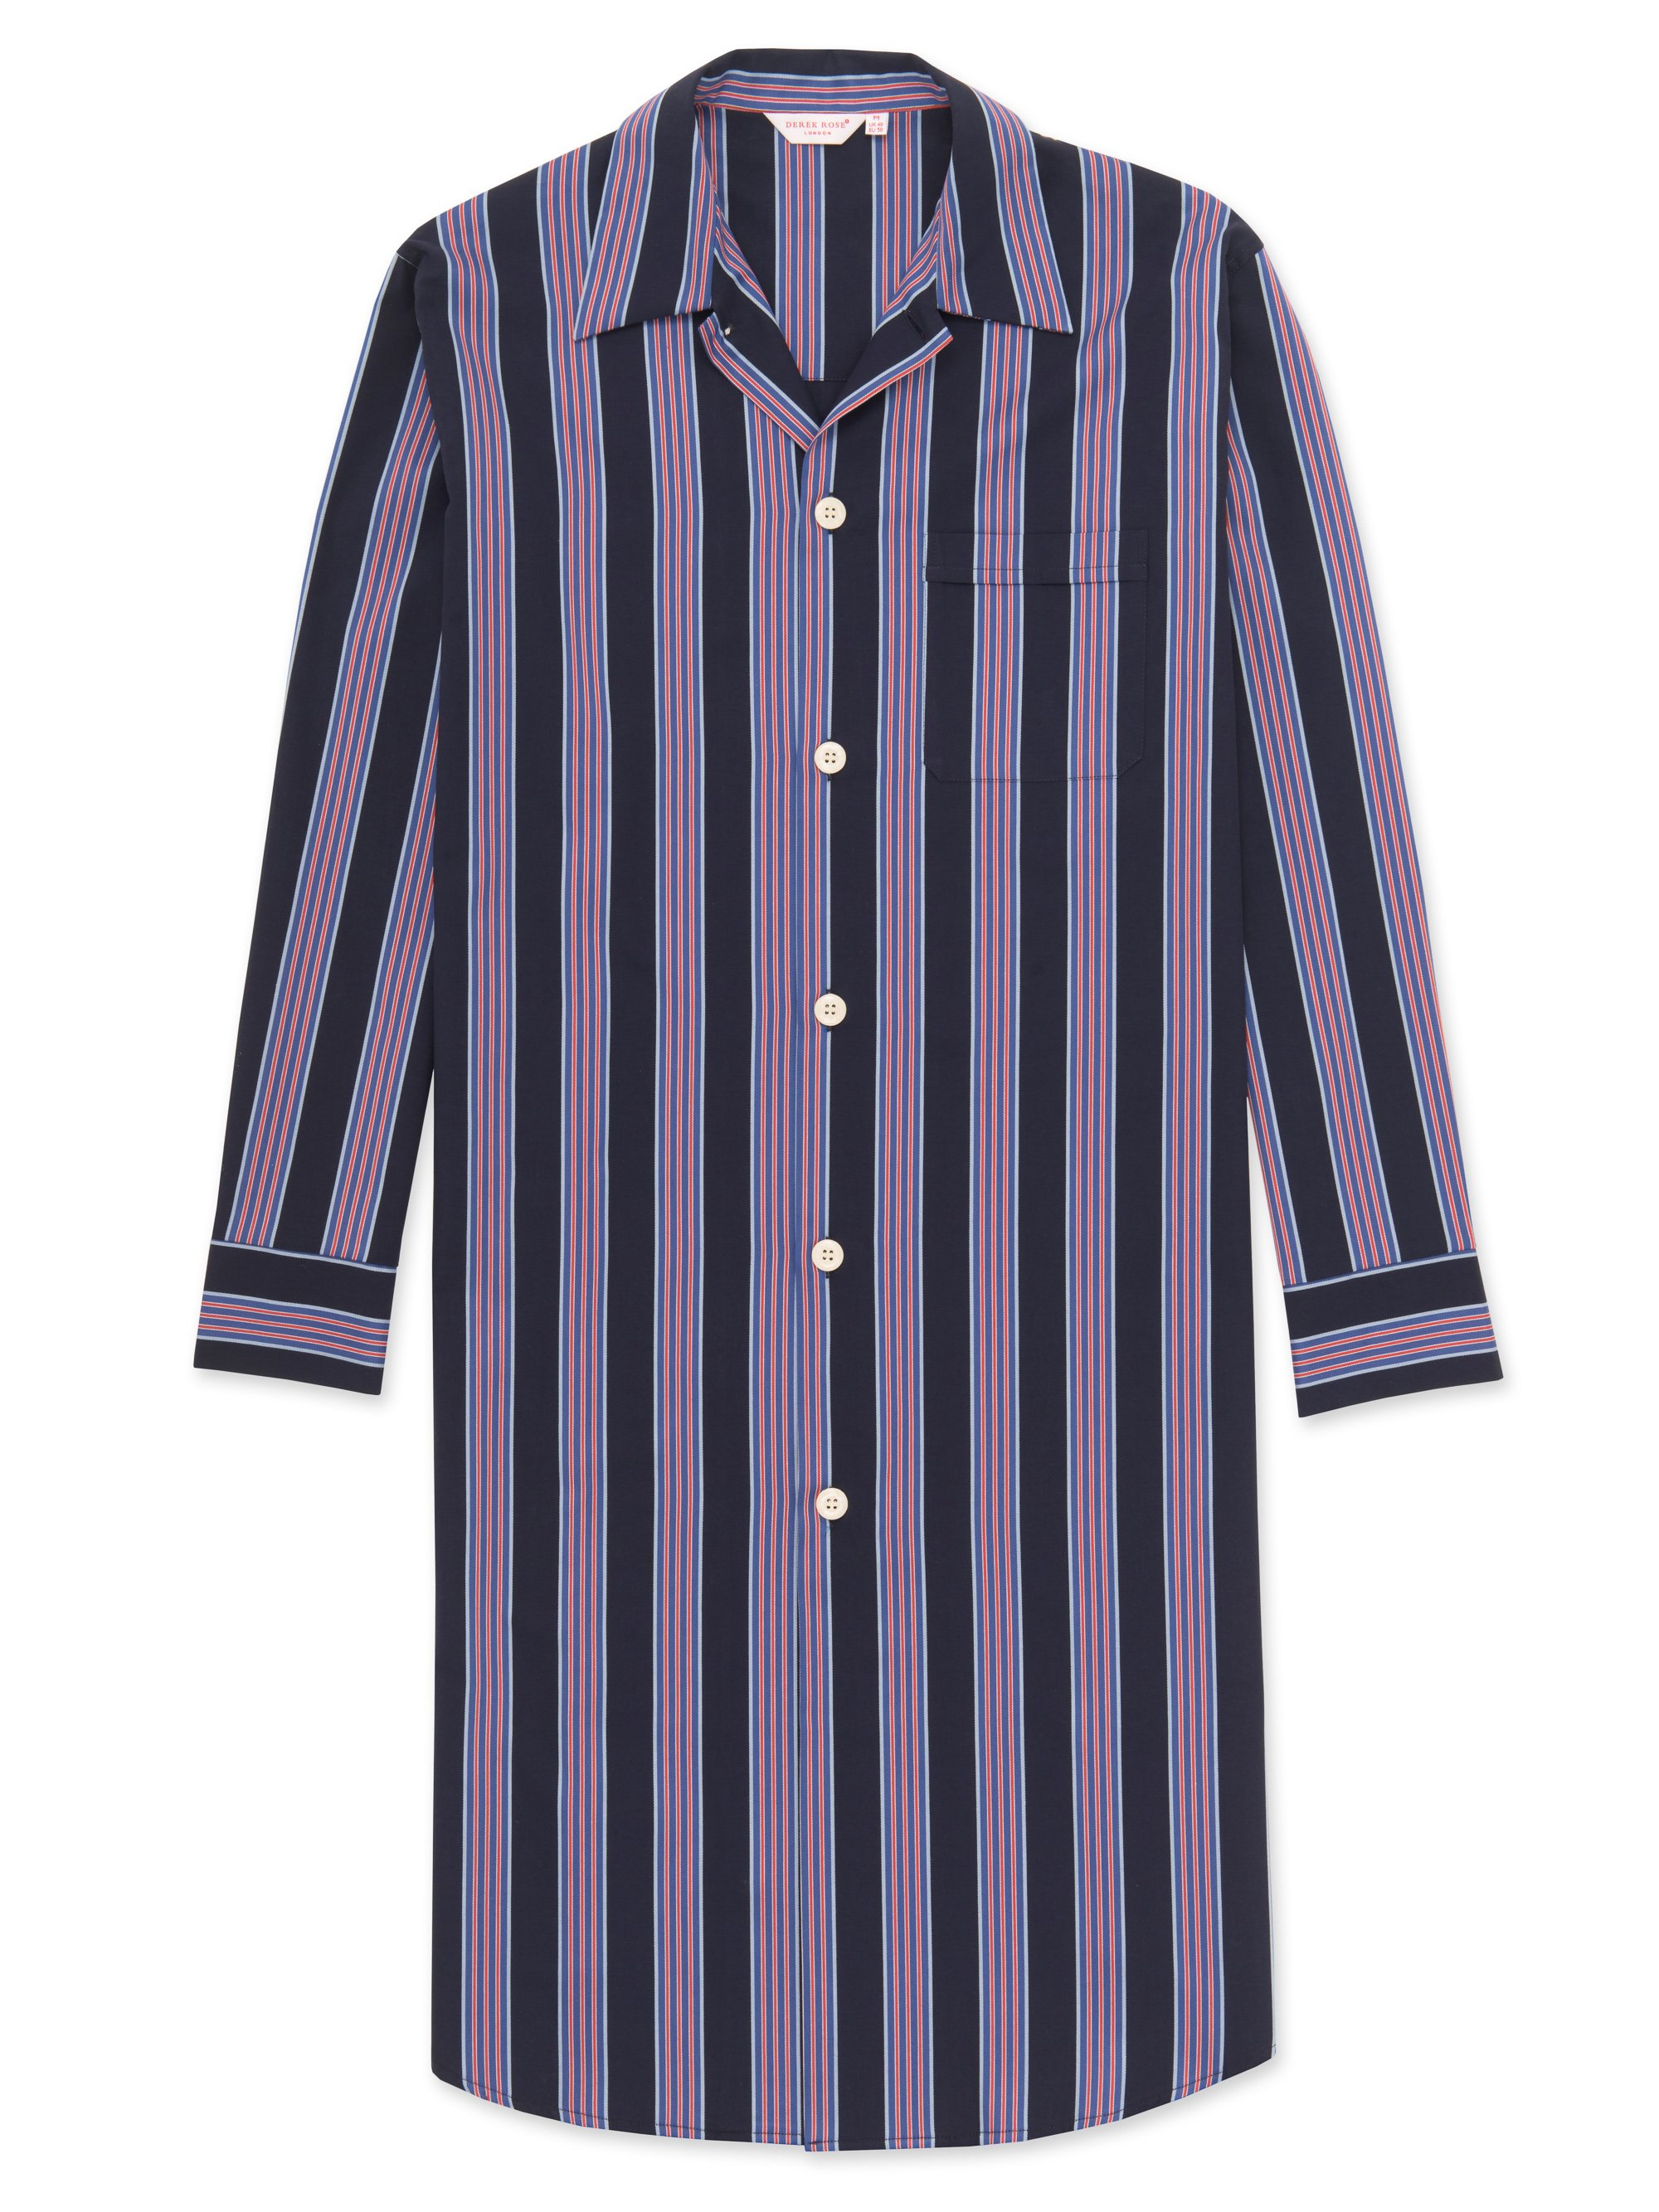 Royal 189 Navy Nightshirt